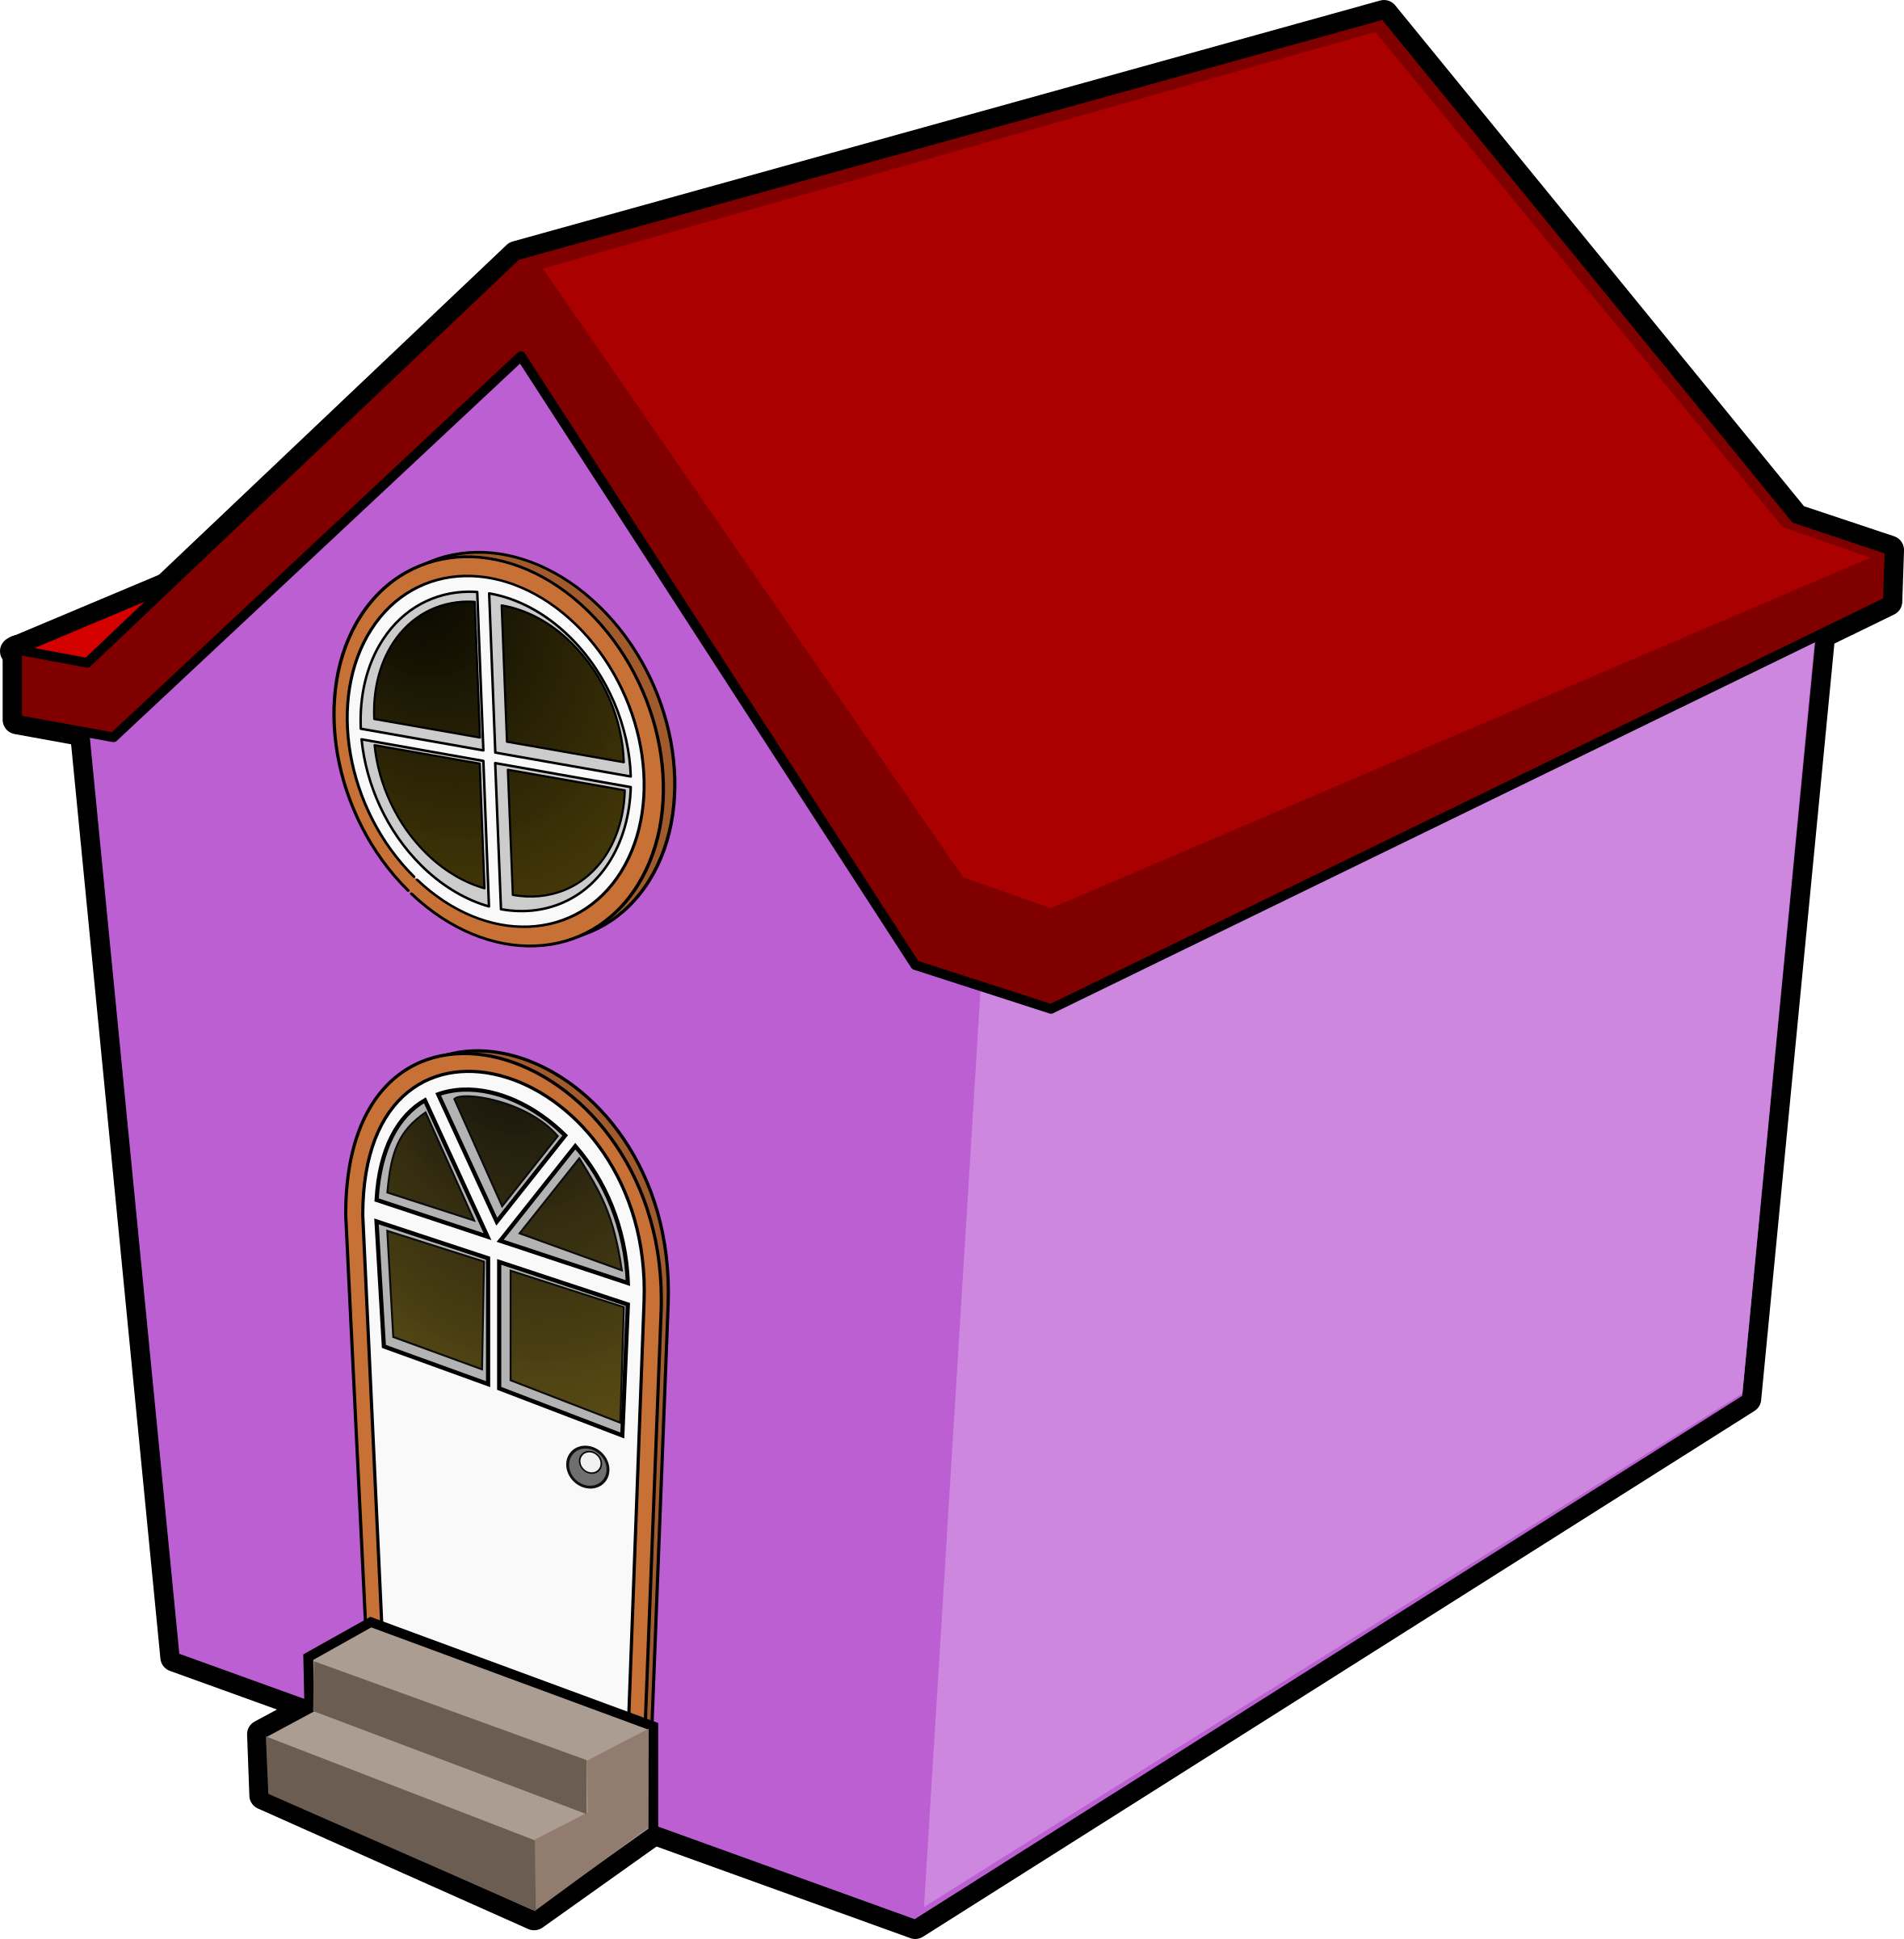 Doghouse clipart red. A little purple house